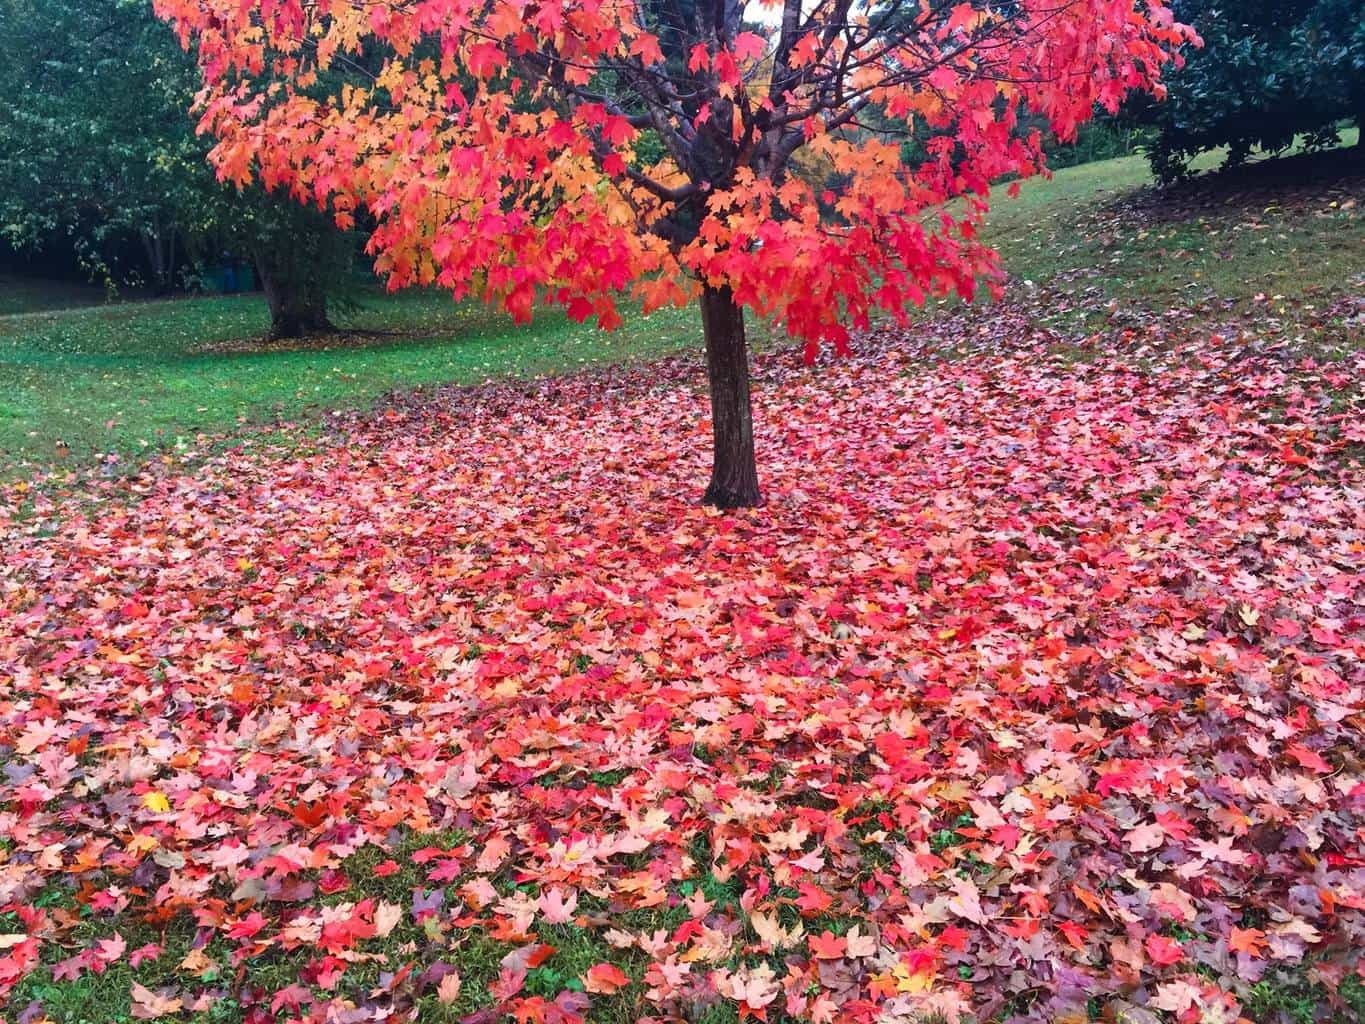 Might as well add a fall color shot also. Taken with my IPhone right down the road in the Atlanta area